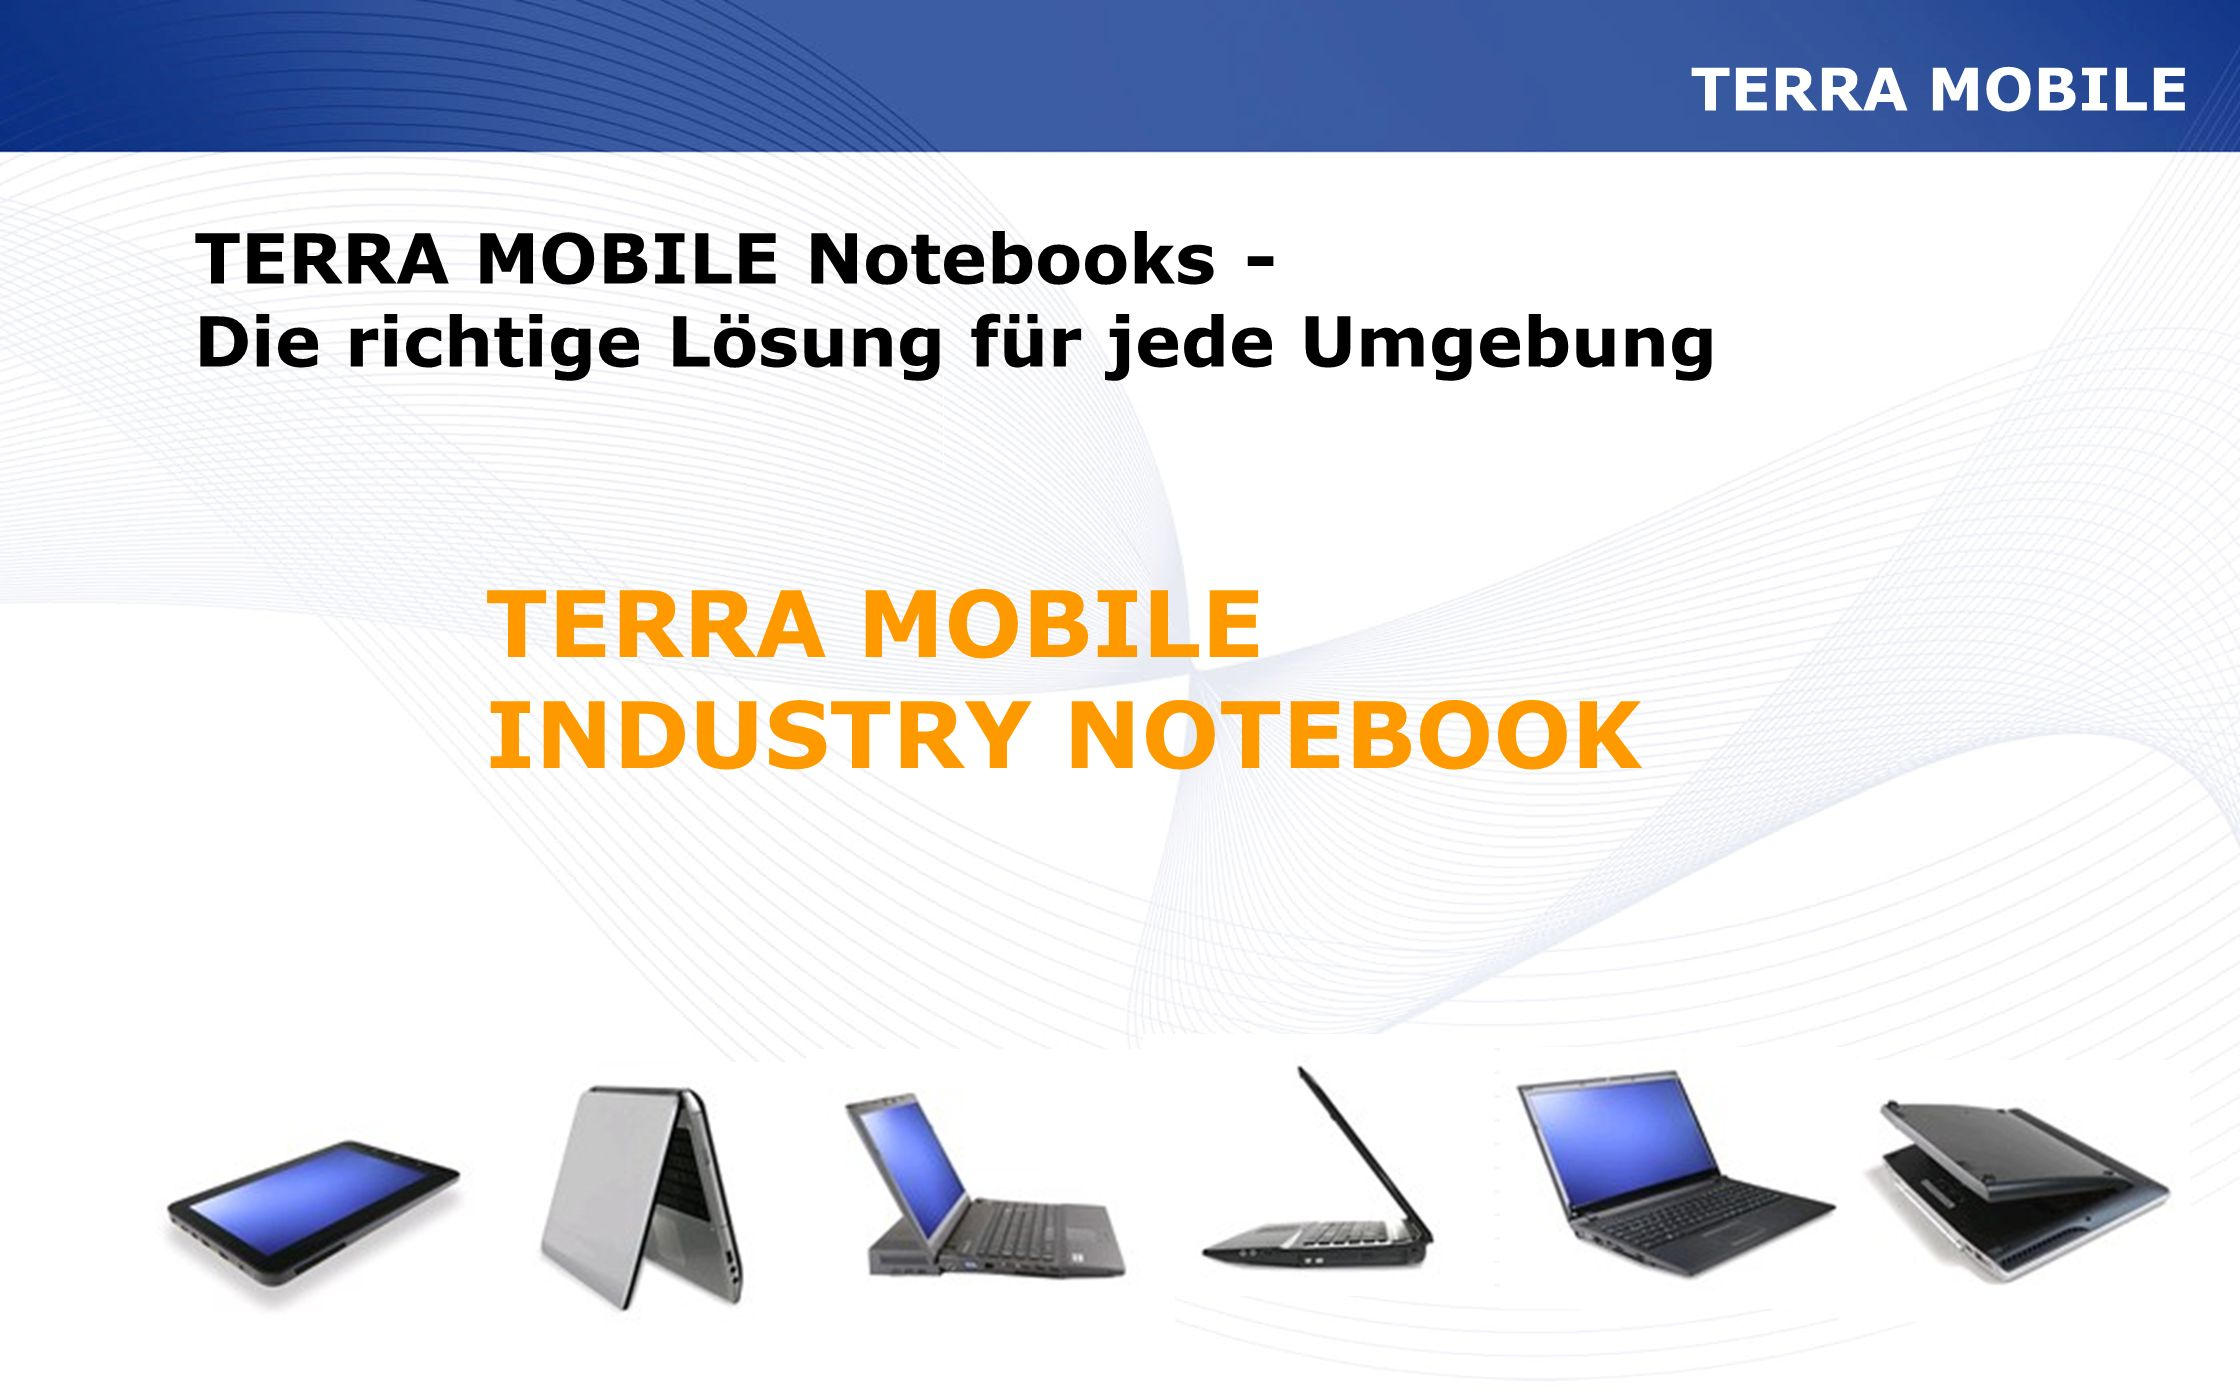 TERRA MOBILE INDUSTRY NOTEBOOK TERRA MOBILE Notebooks -